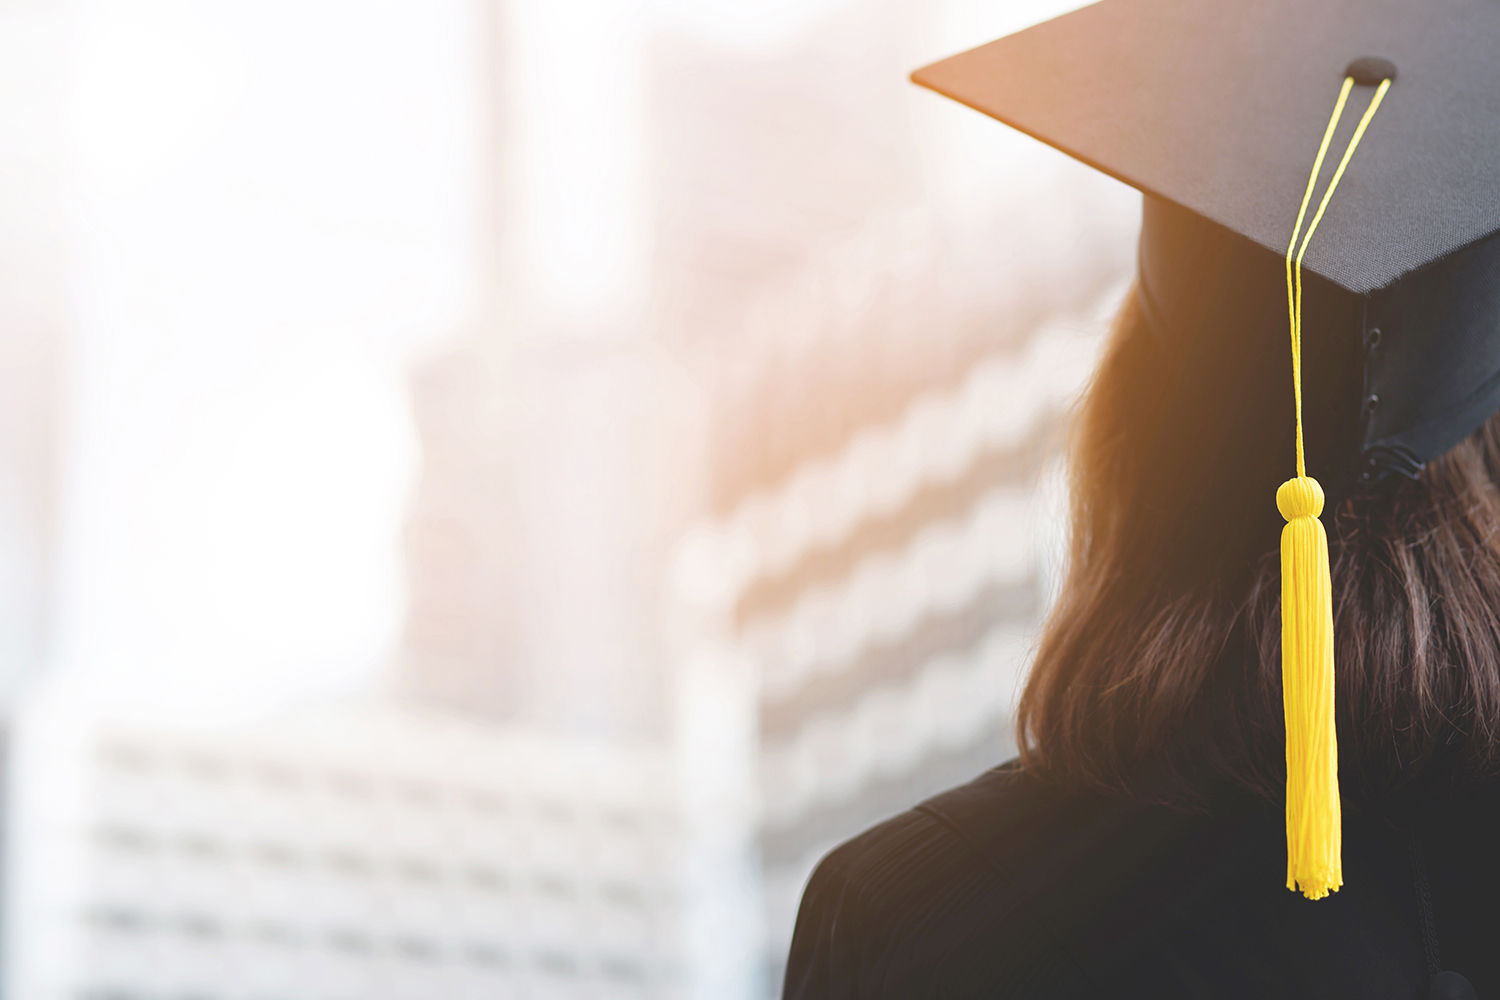 The future of higher education in a disruptive world - KPMG Global